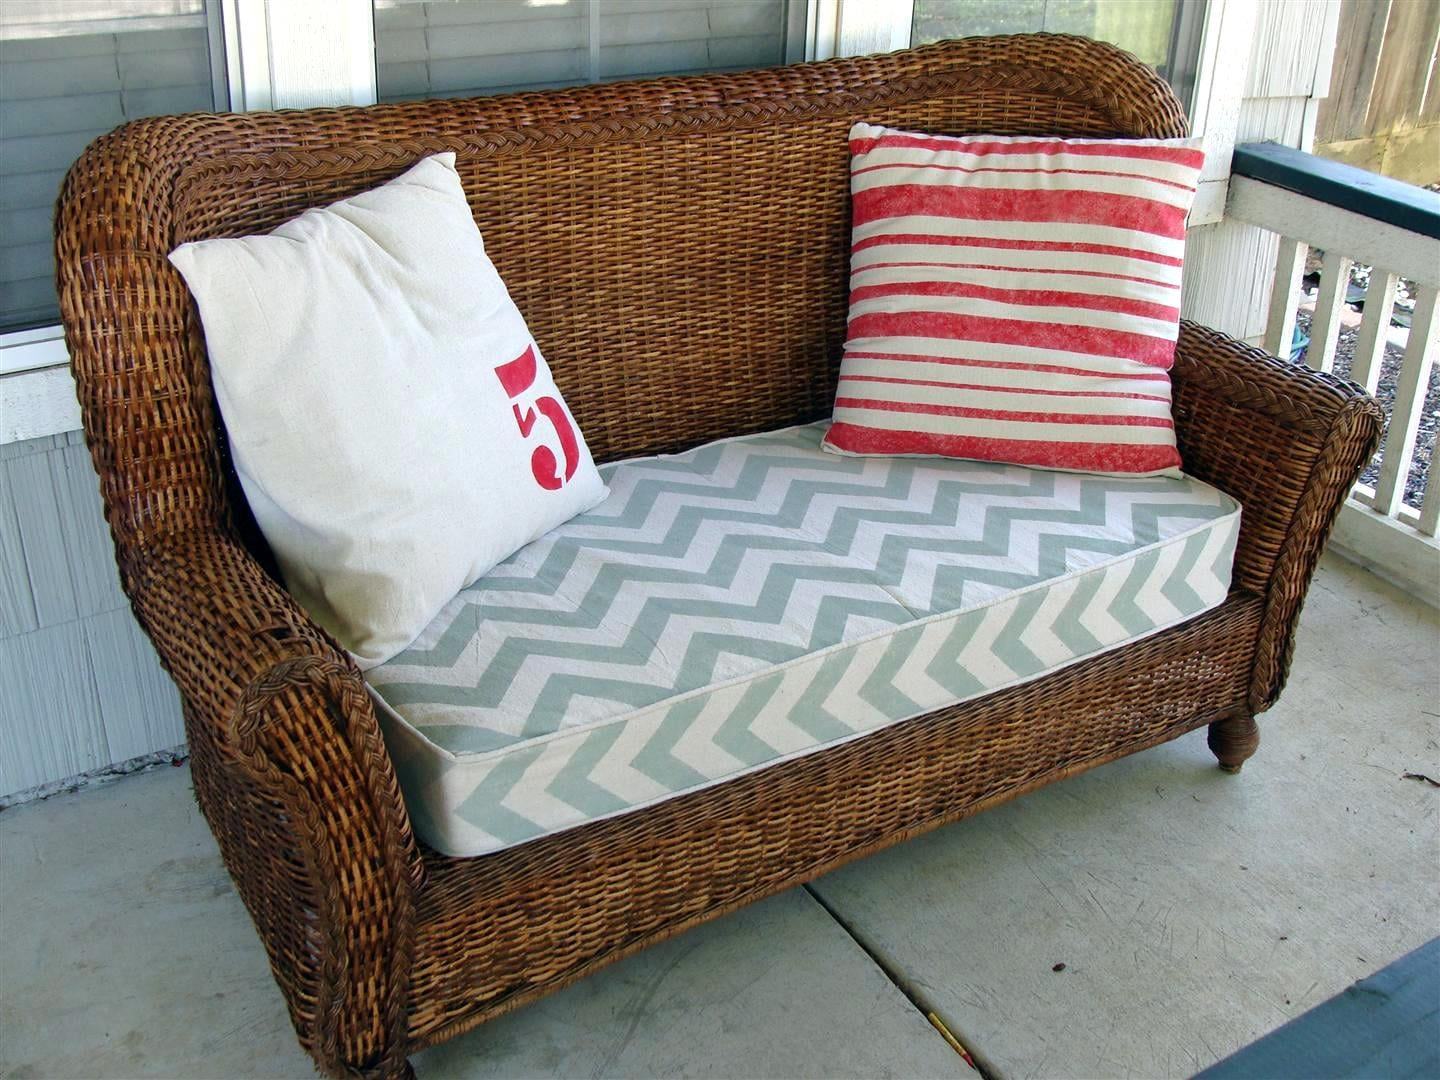 Upcycle Your Crib Mattress Into a Wicker Love Seat